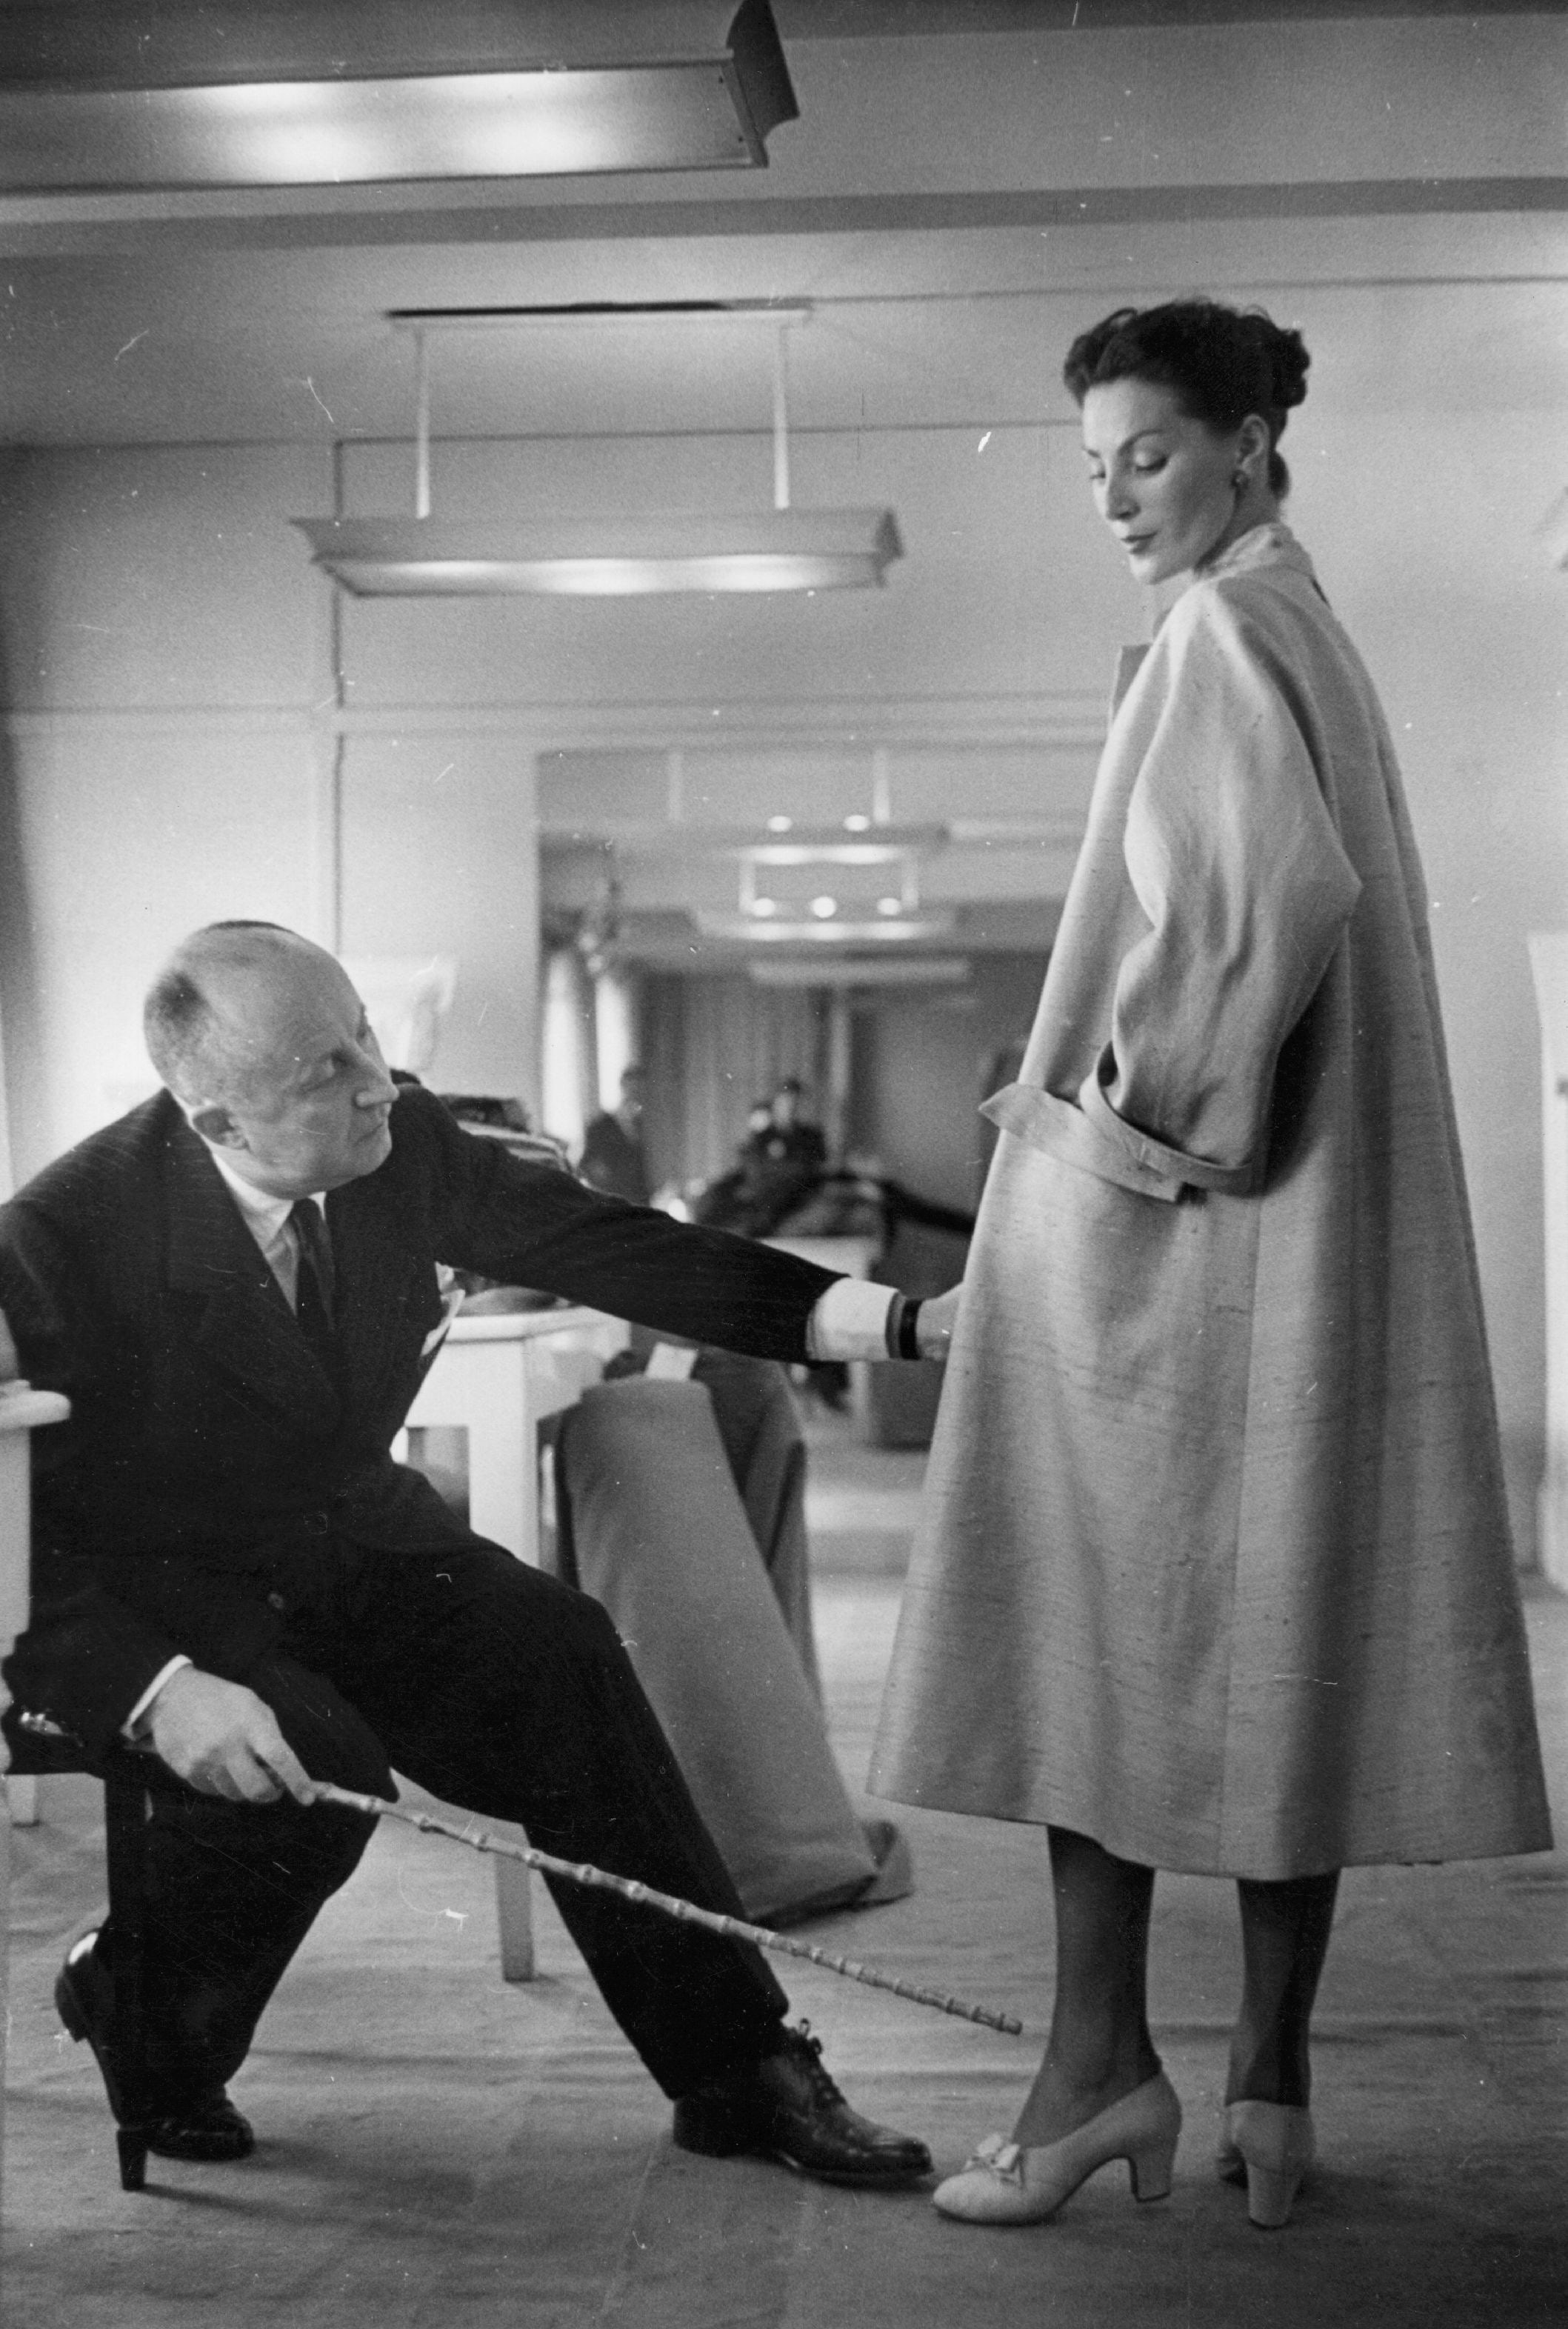 Christian Dior at work in his Paris studio  (1905-1957) | Source: Getty